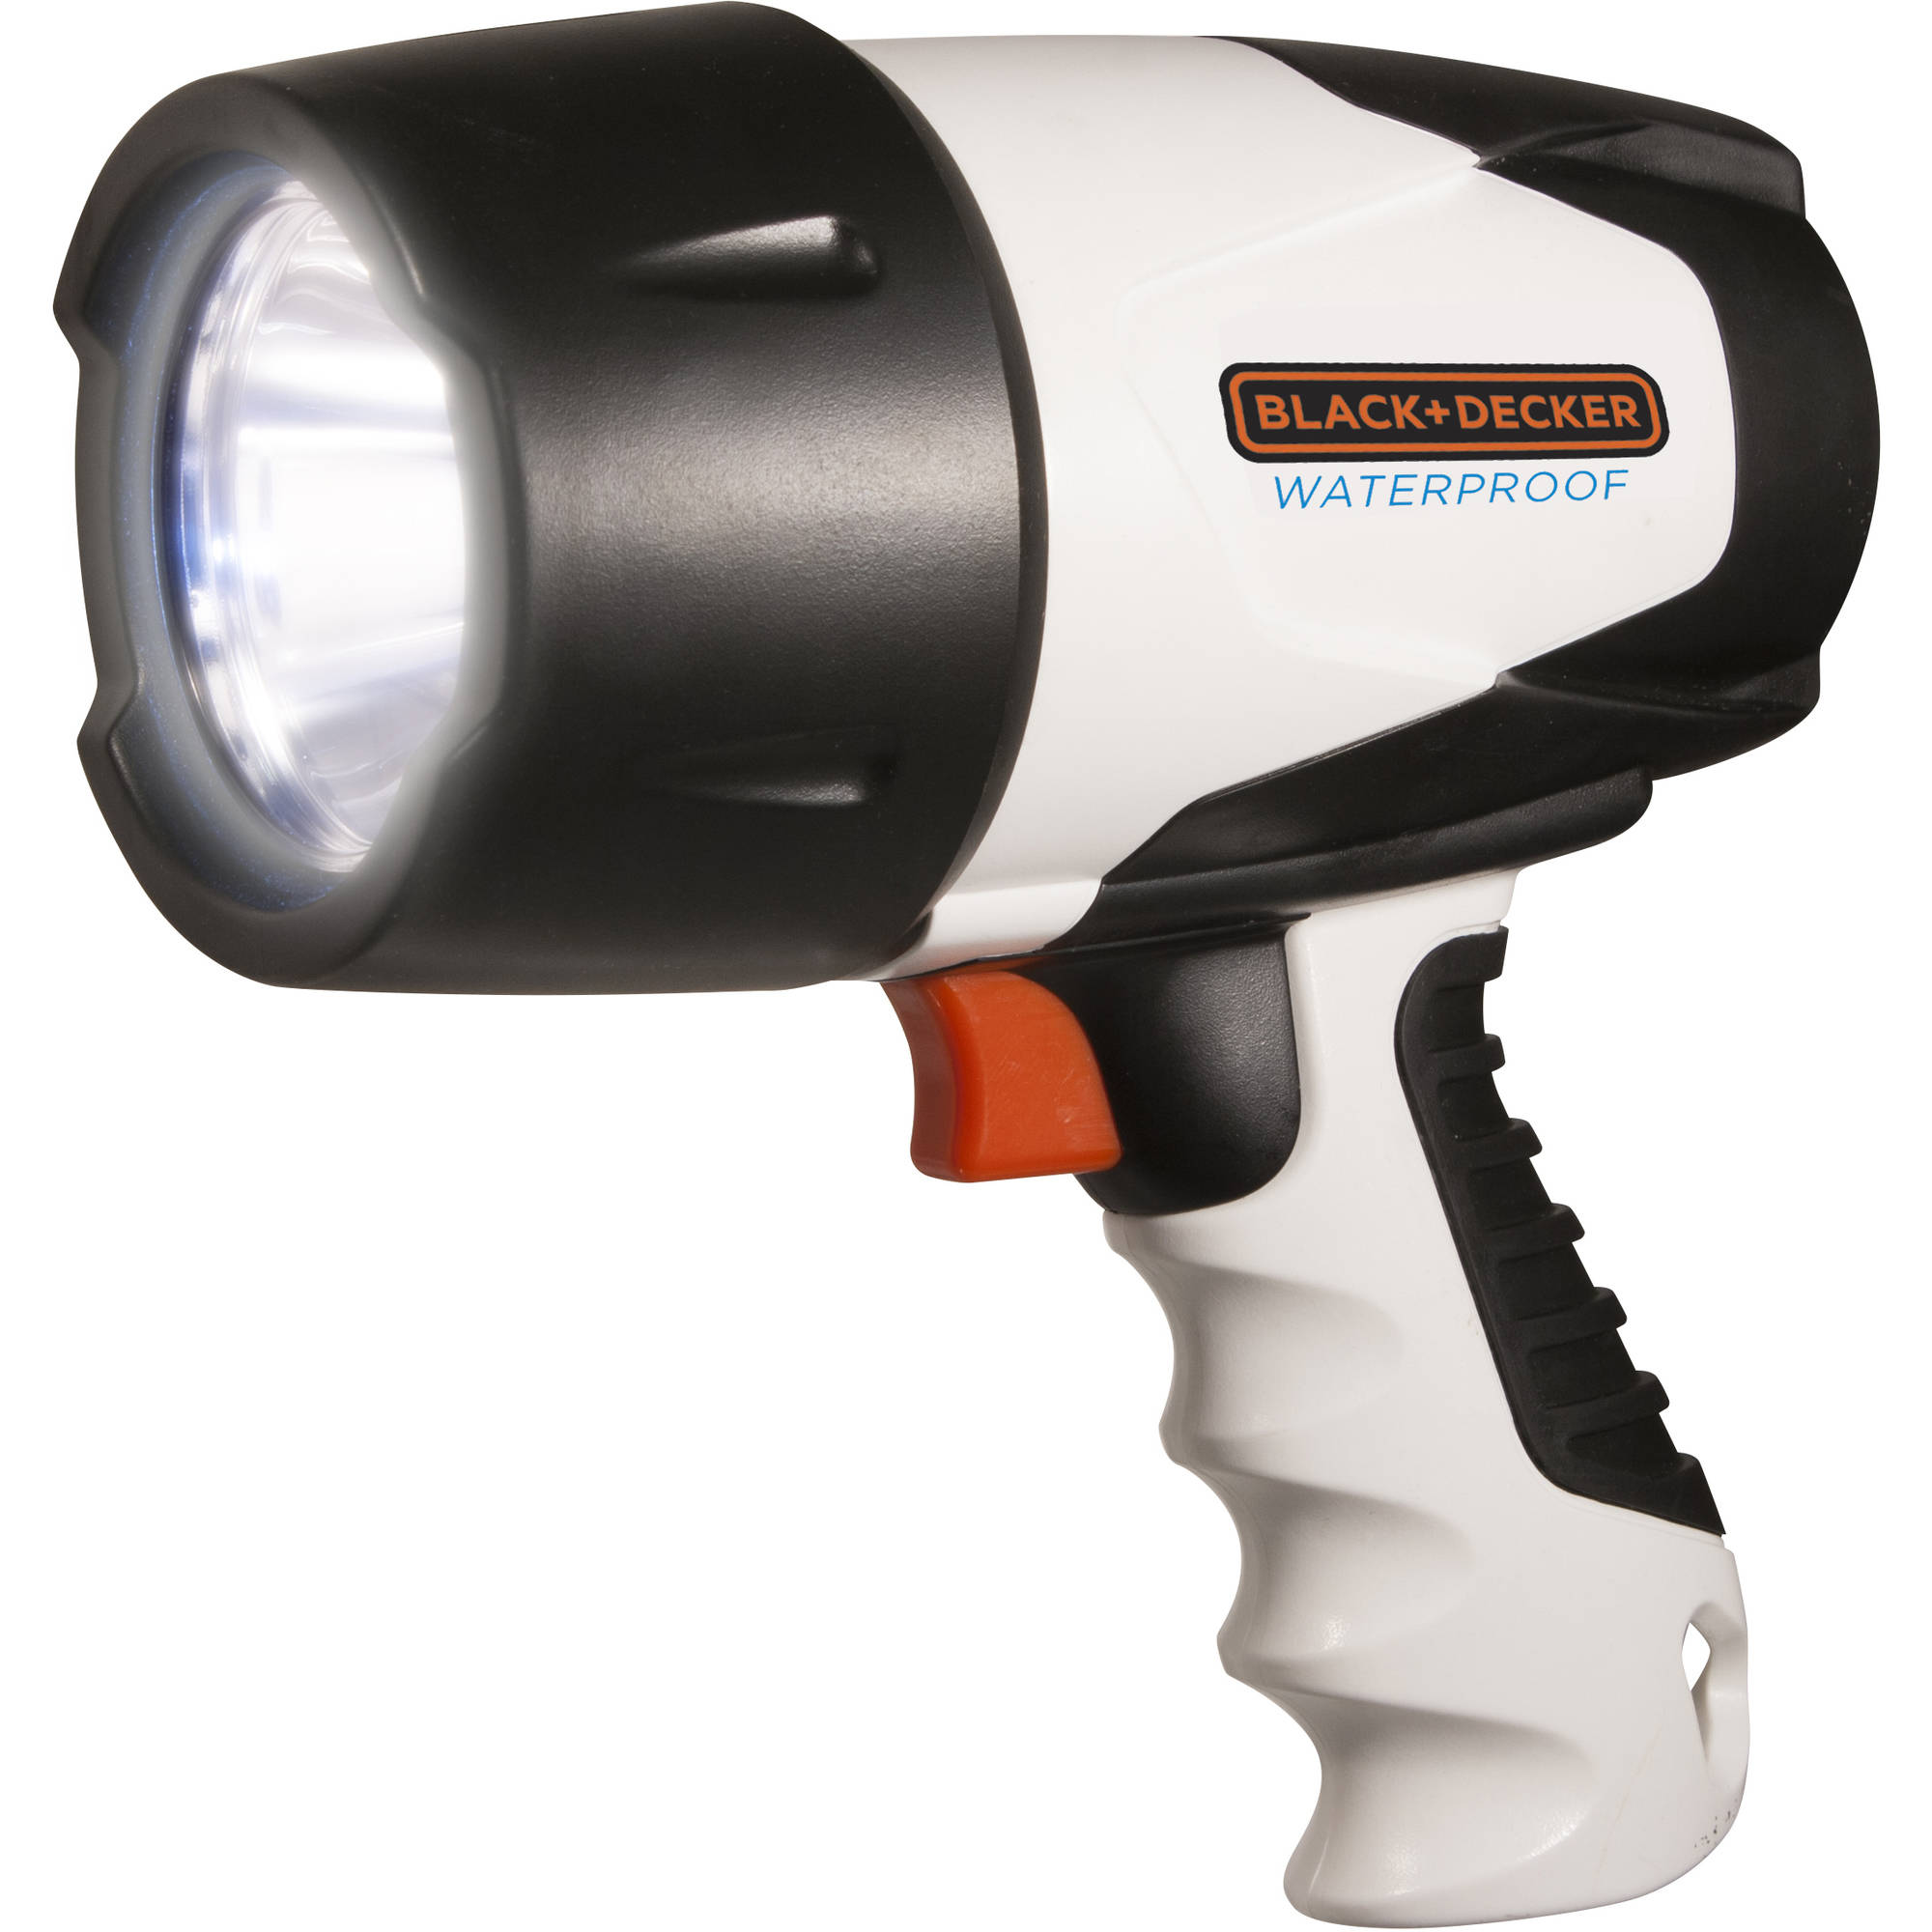 Black & Decker 3 watt Waterproof Spotlight